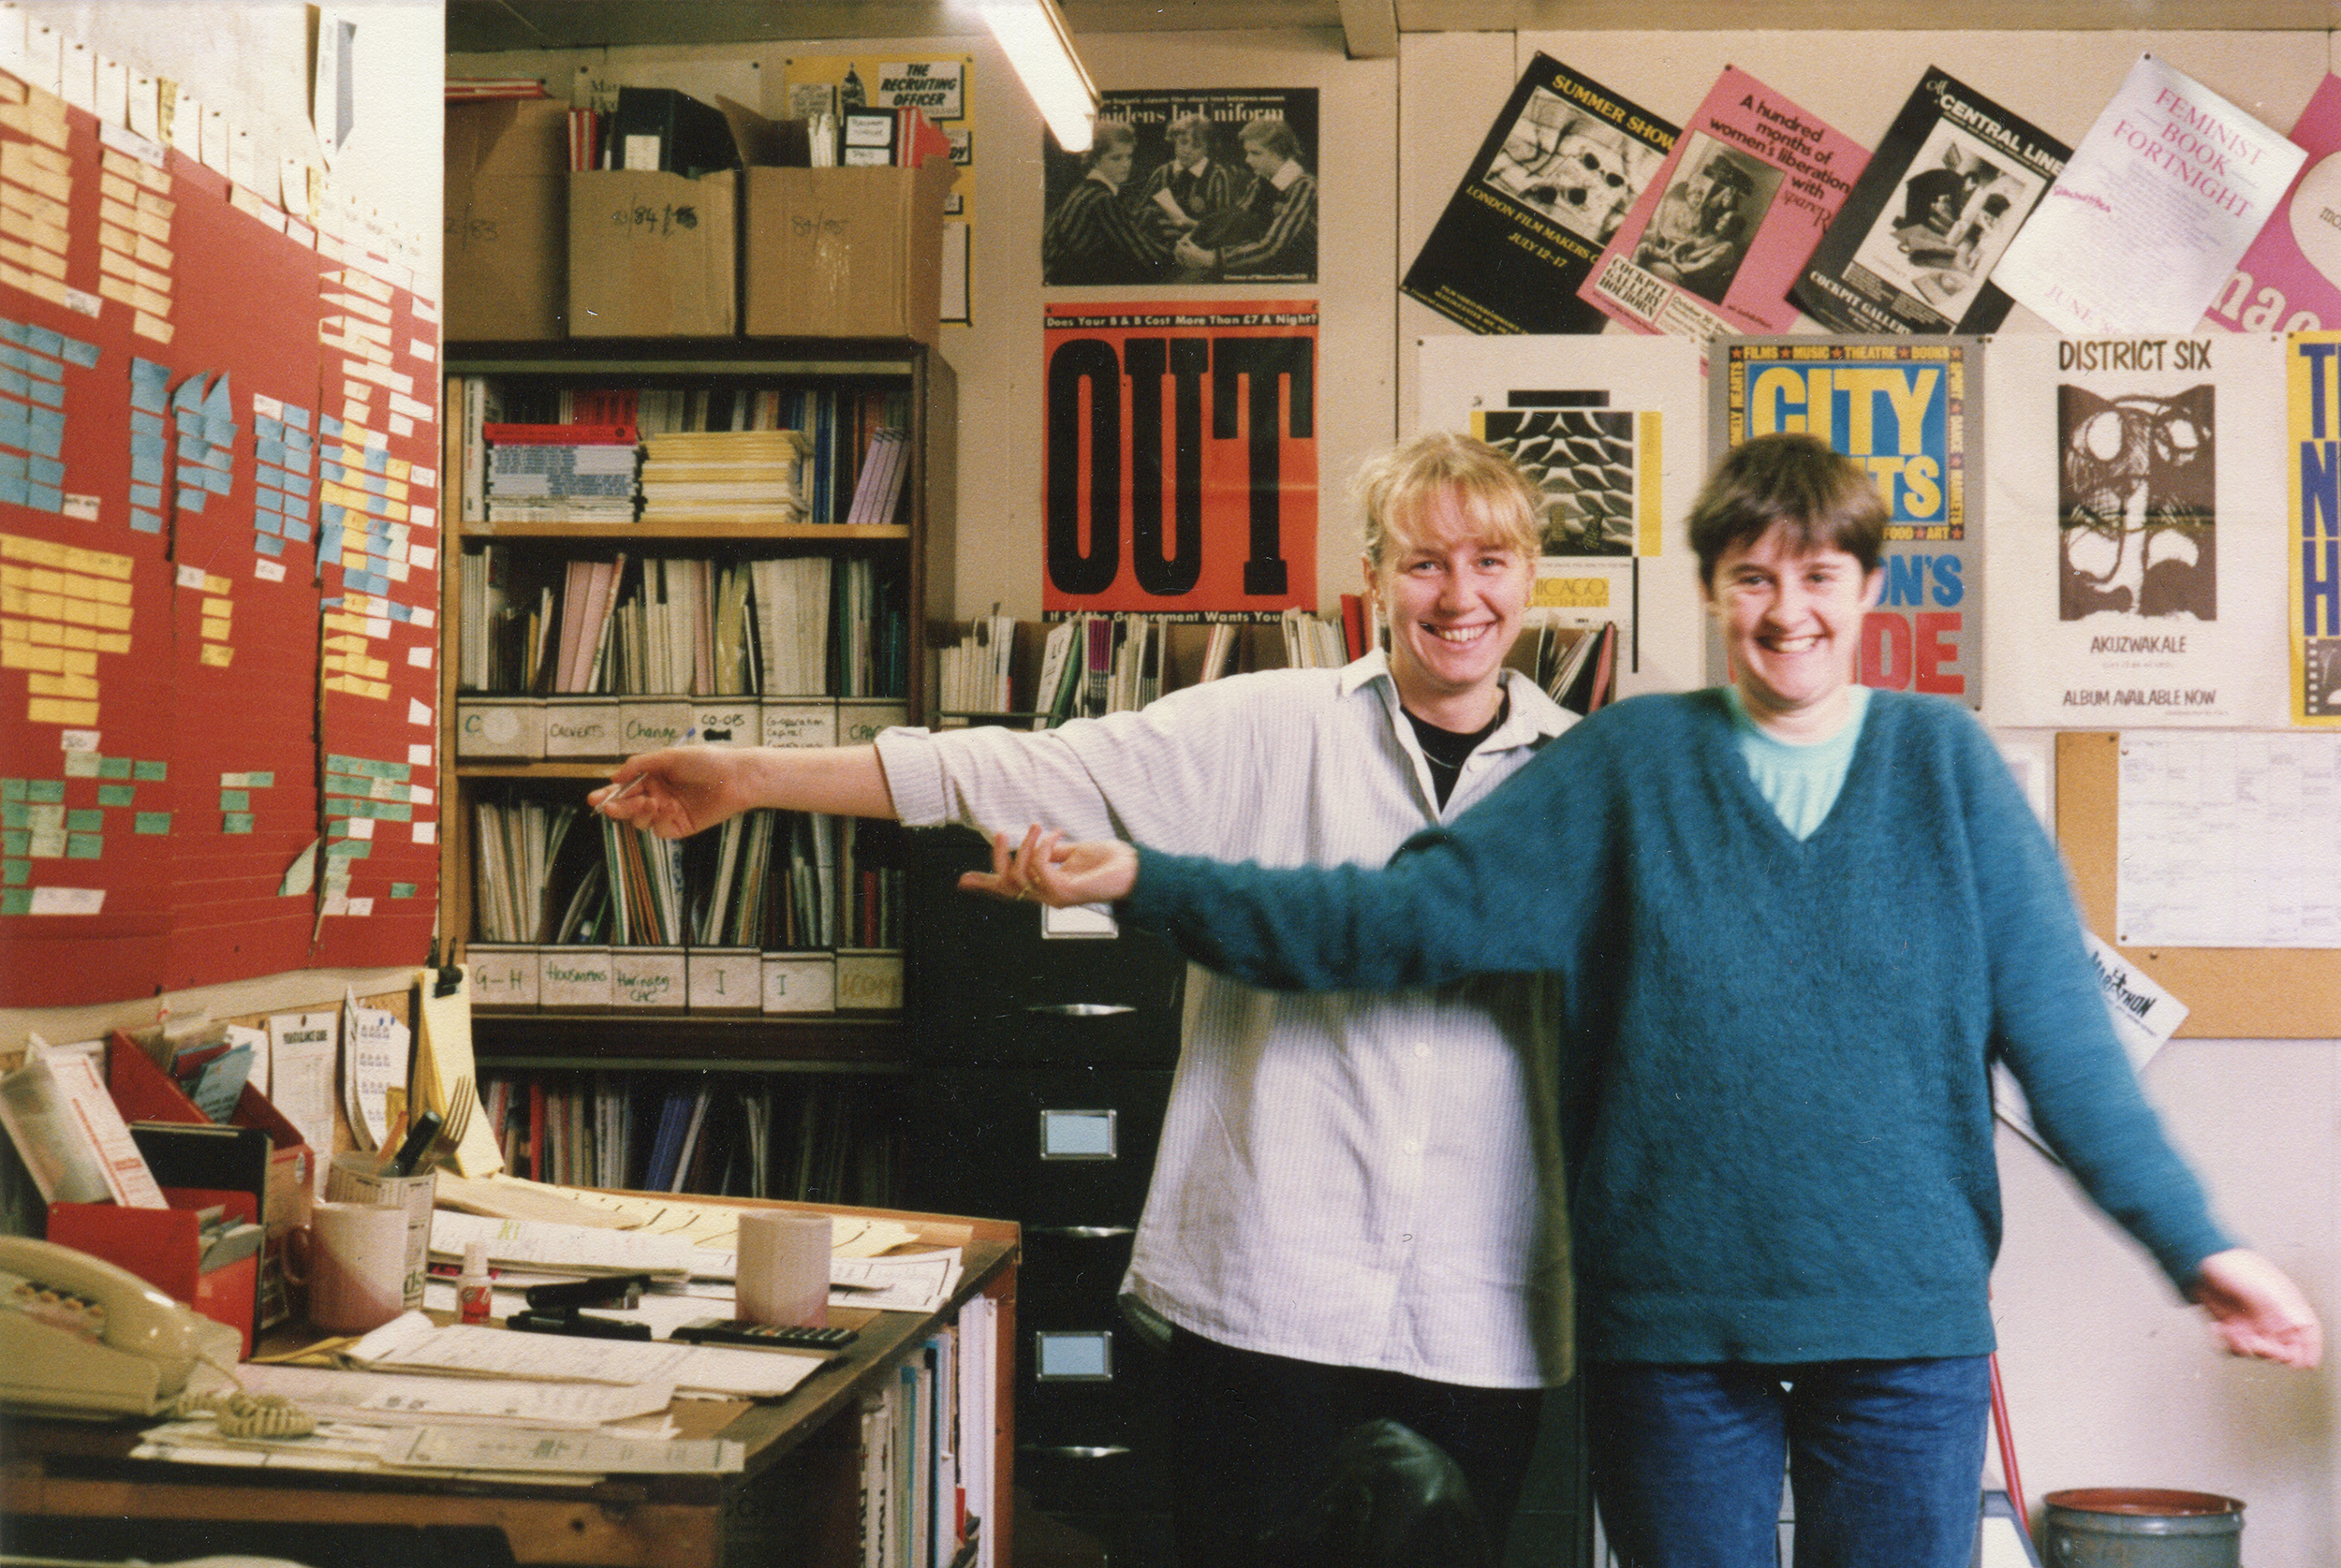 Two women standing in front of wall with posters